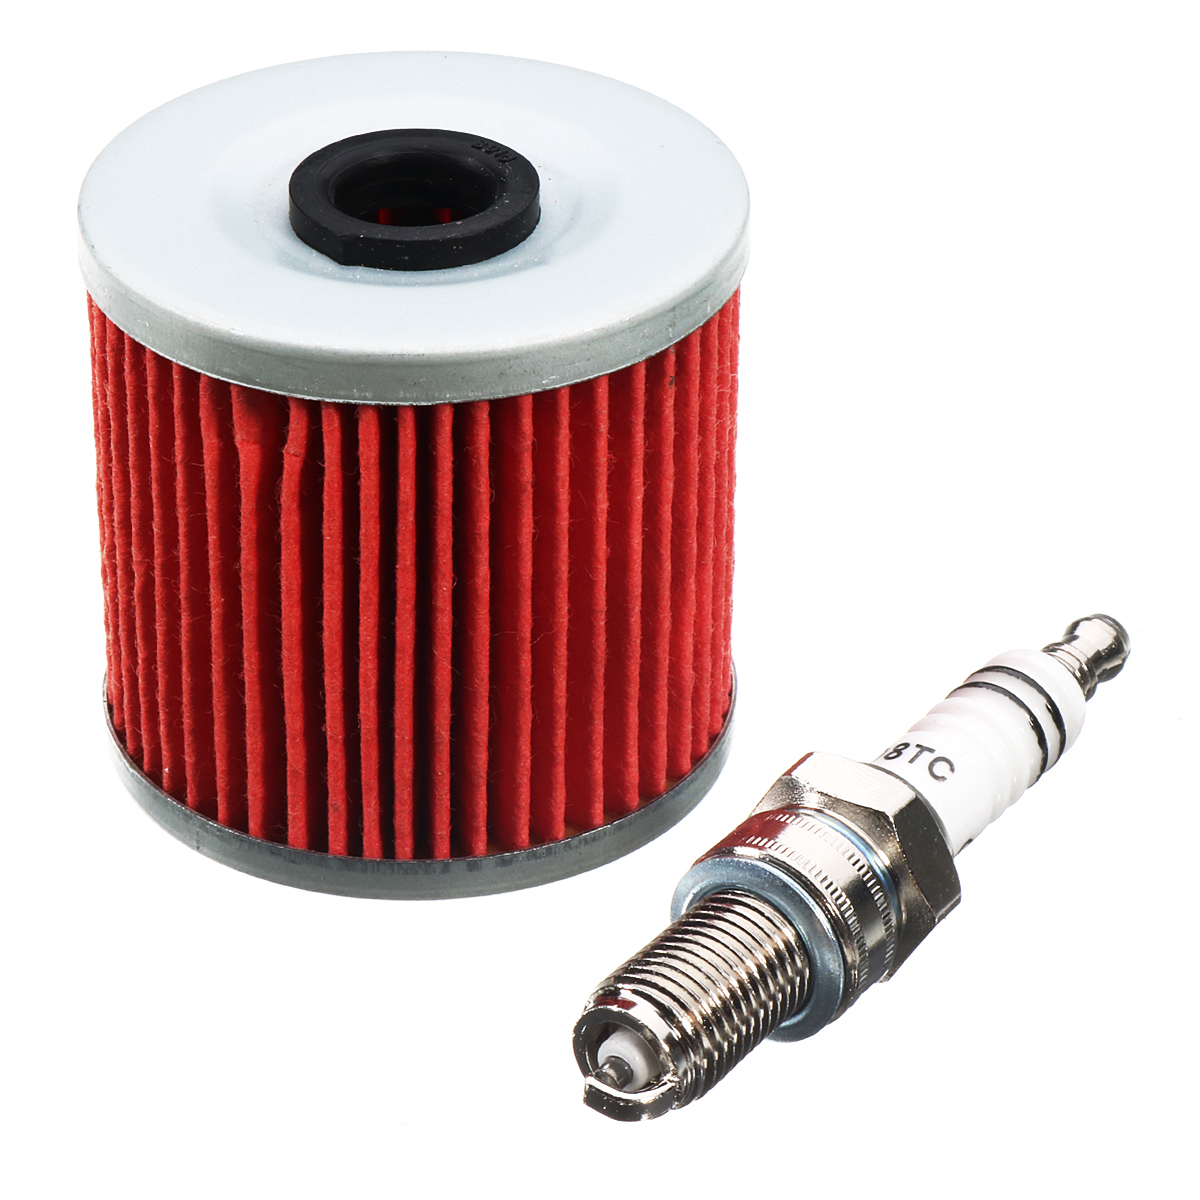 Oil Filter + Spark Plug For Kawasaki KL600 KLX650R KL 6